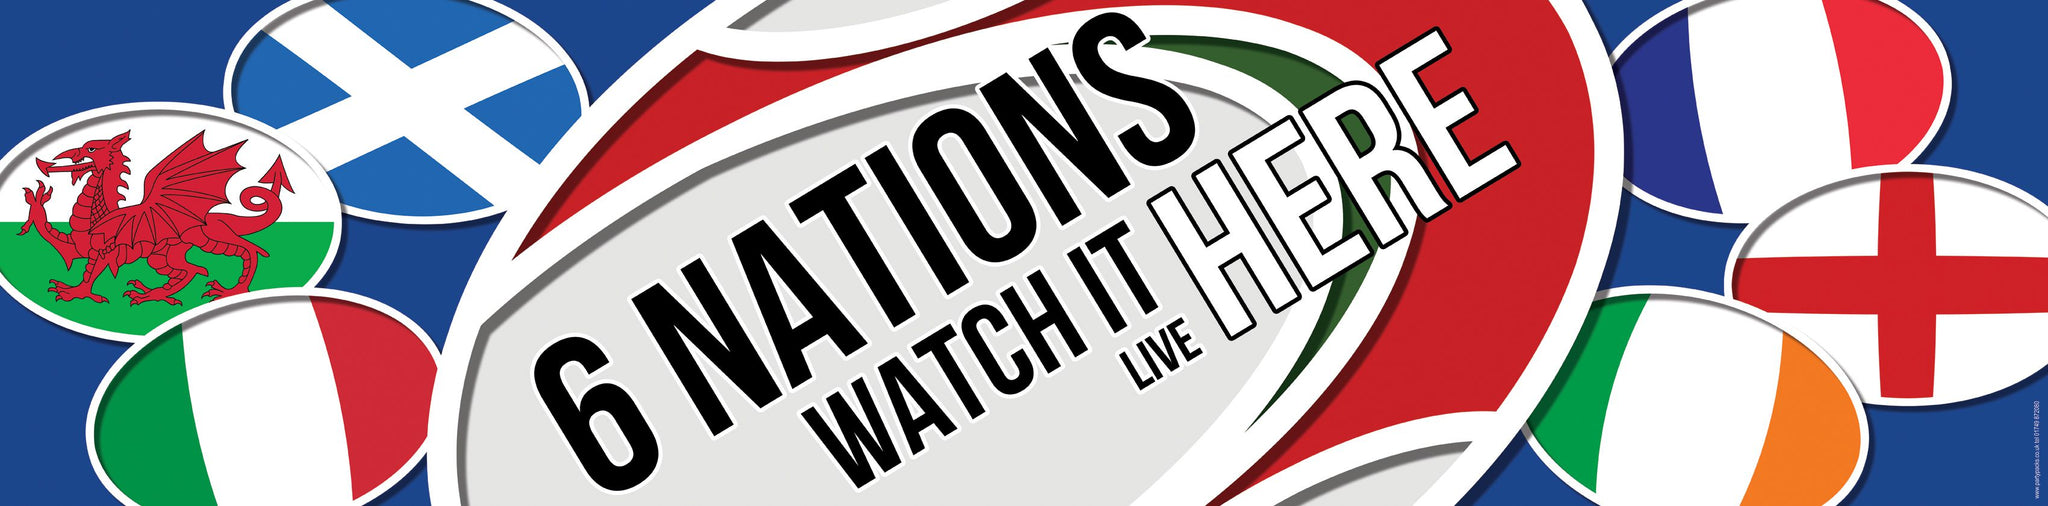 Six Nations Rugby - Starting 3rd February